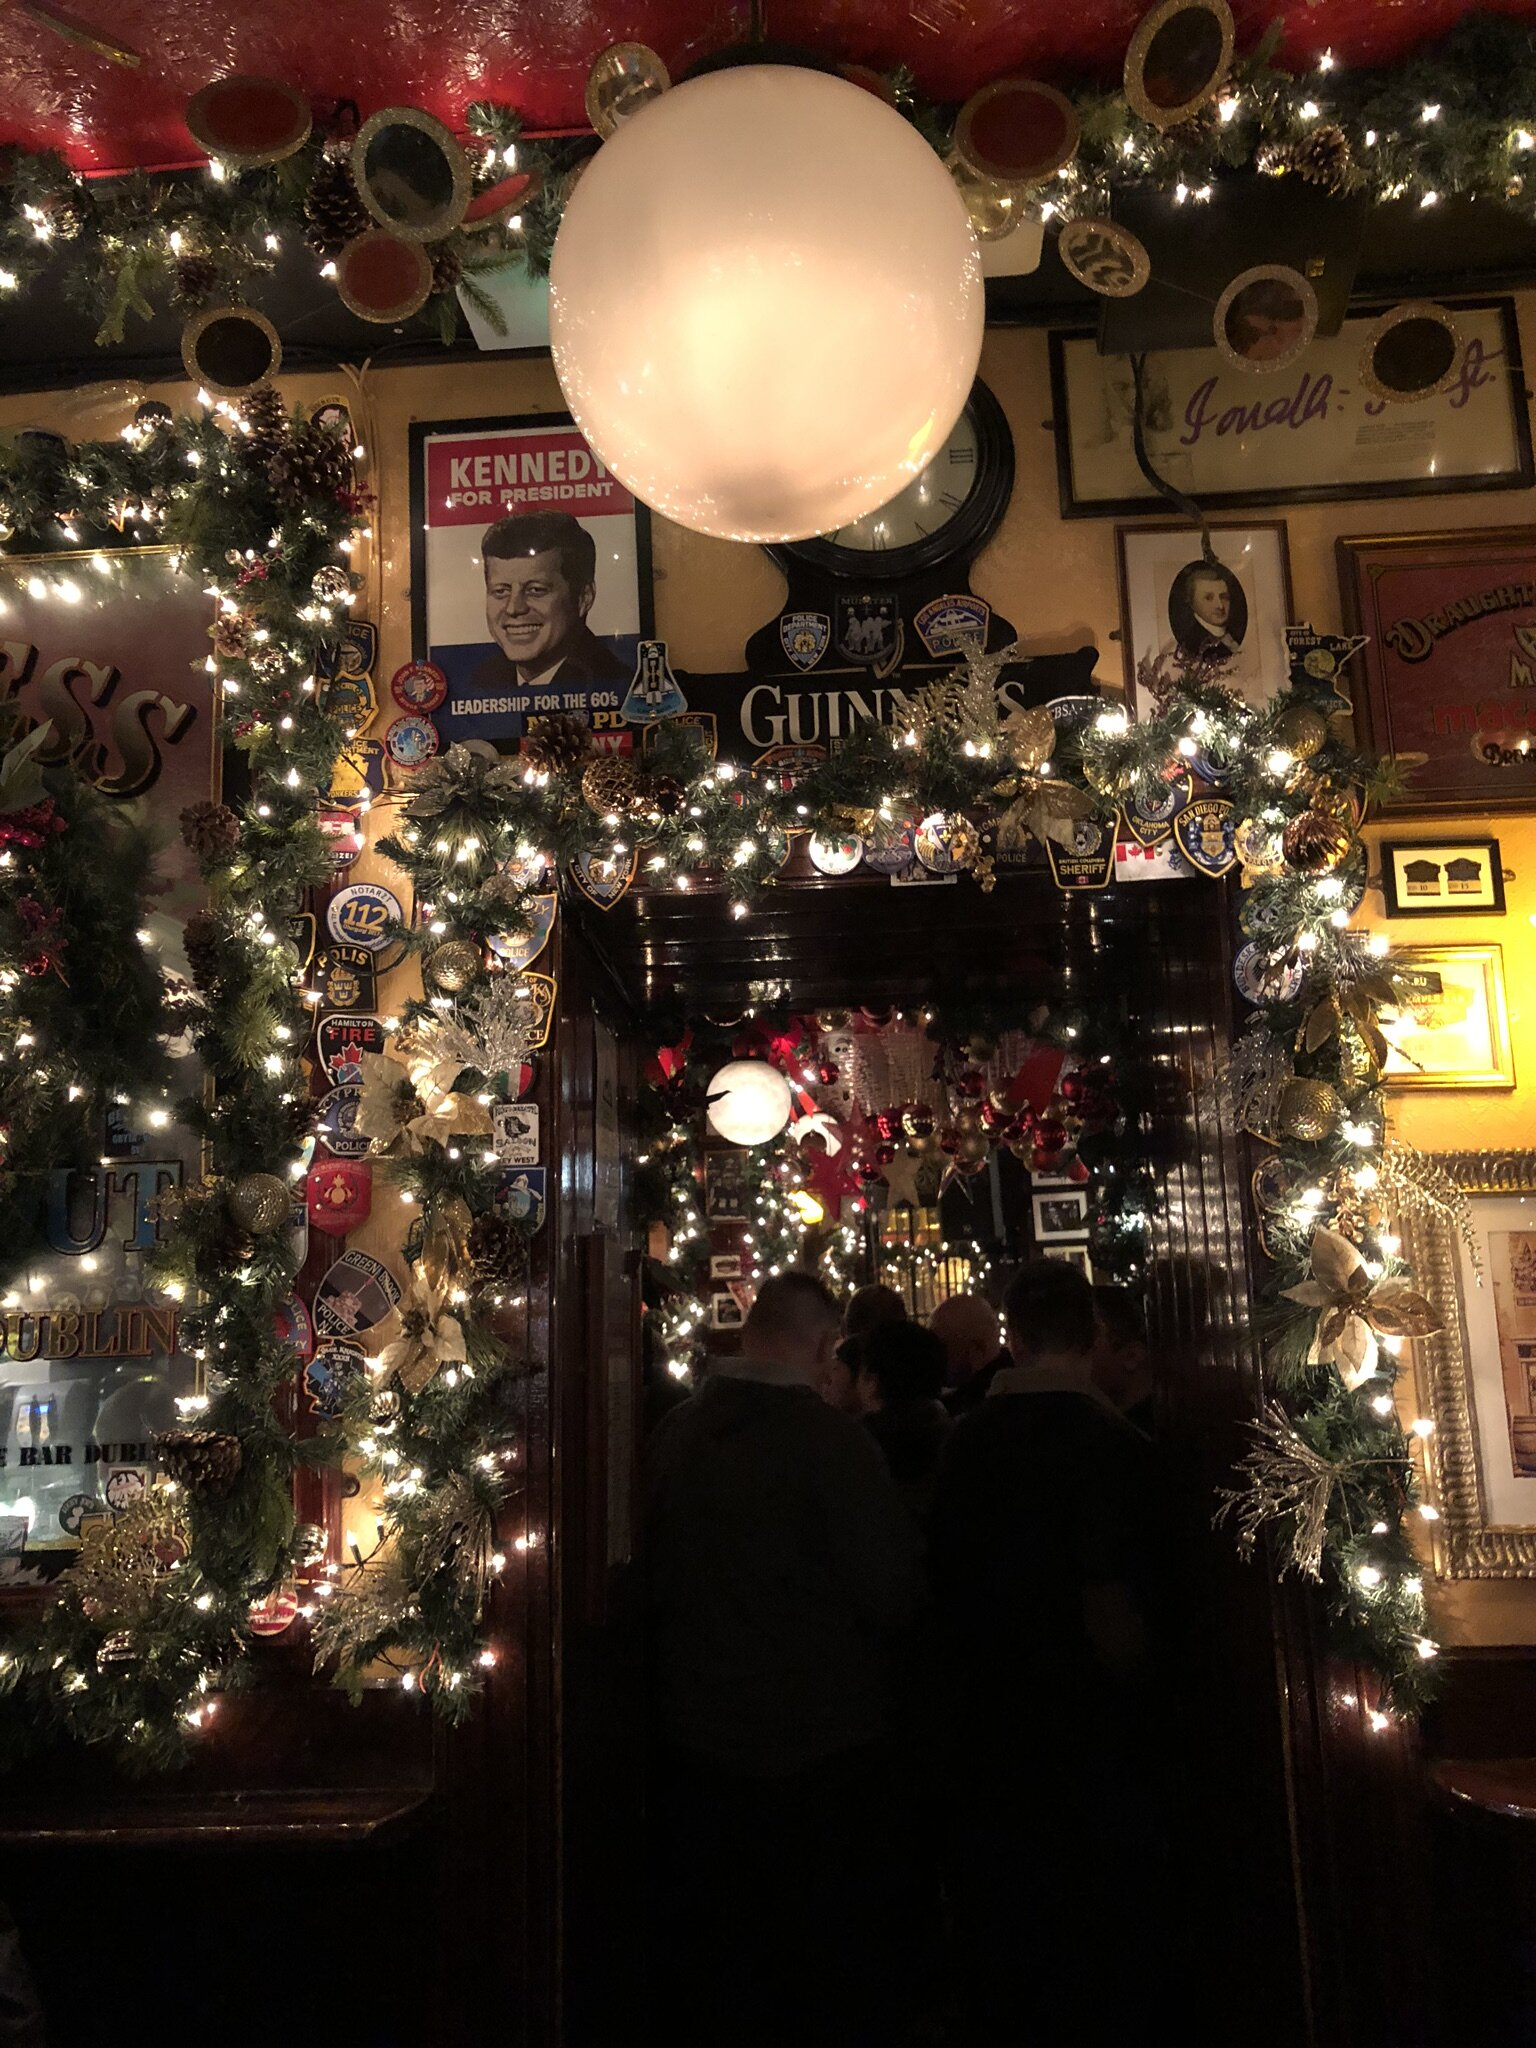 Getting in the holiday spirit in Dublin, Ireland (Temple Bar).